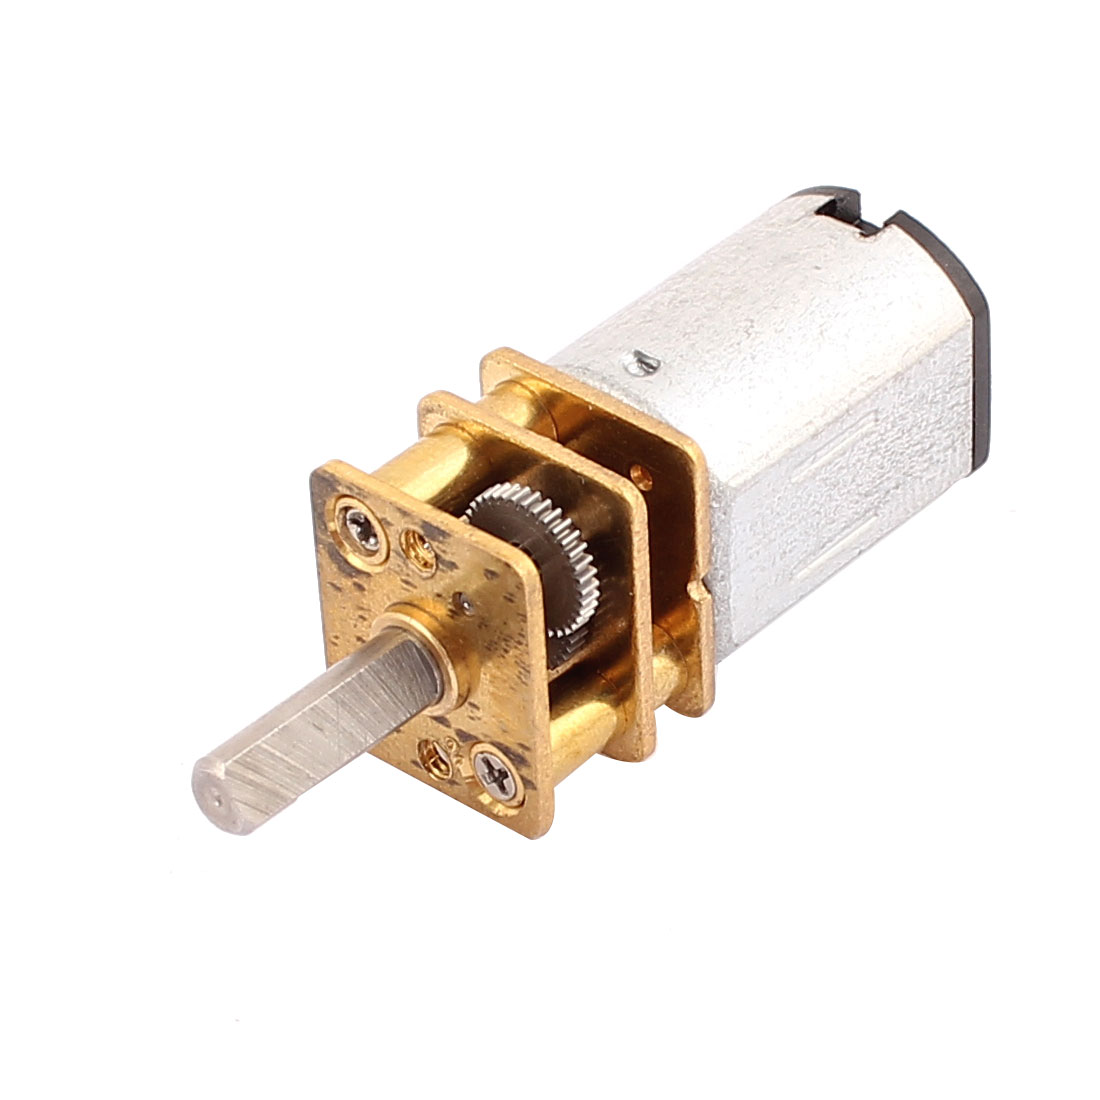 DC 3V 15RPM High Torque 3mm Shaft Dia Low Speed Gear Box Motor for Toy Model